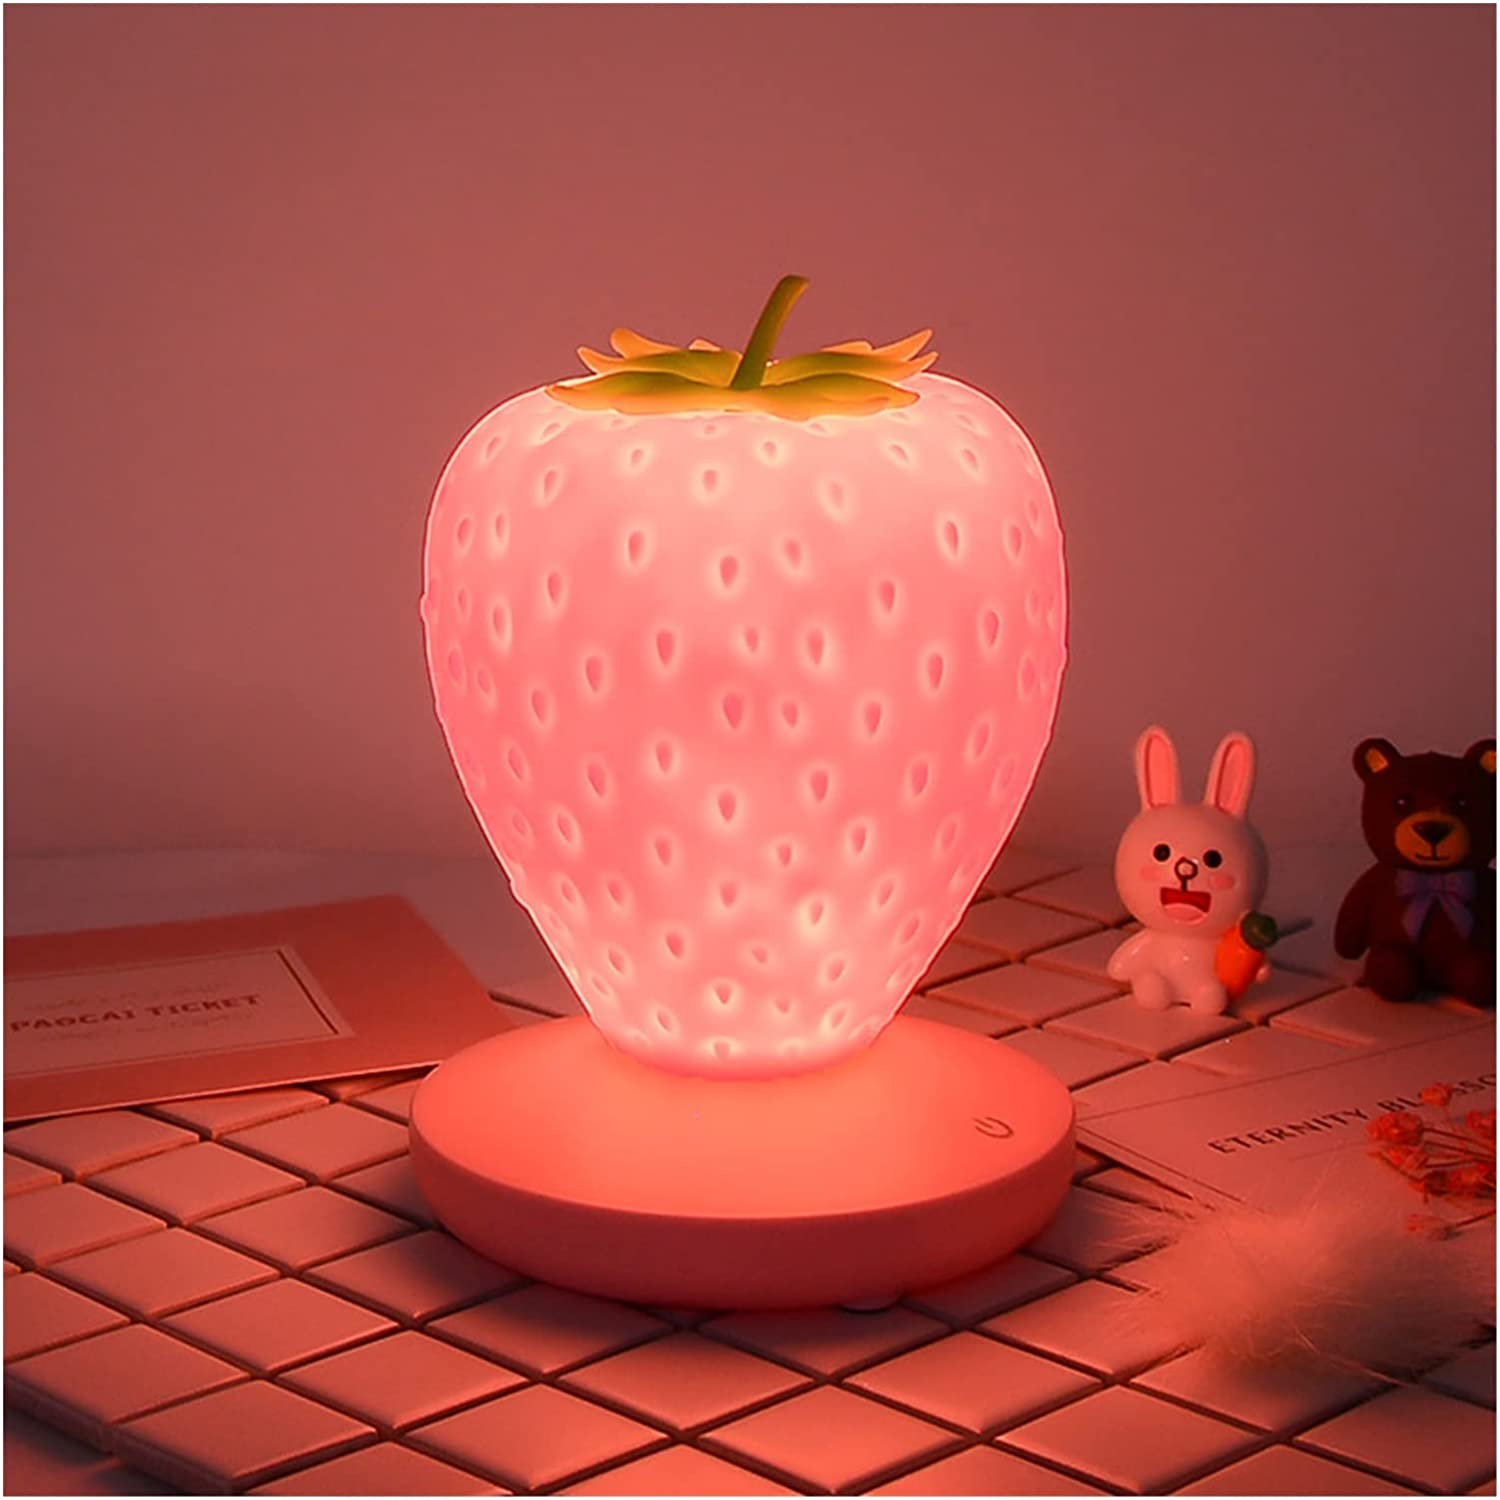 Excellent QIAONAI OIR724 LED Strawberry Night Light USB Jacksonville Mall B Lamp Table Touch